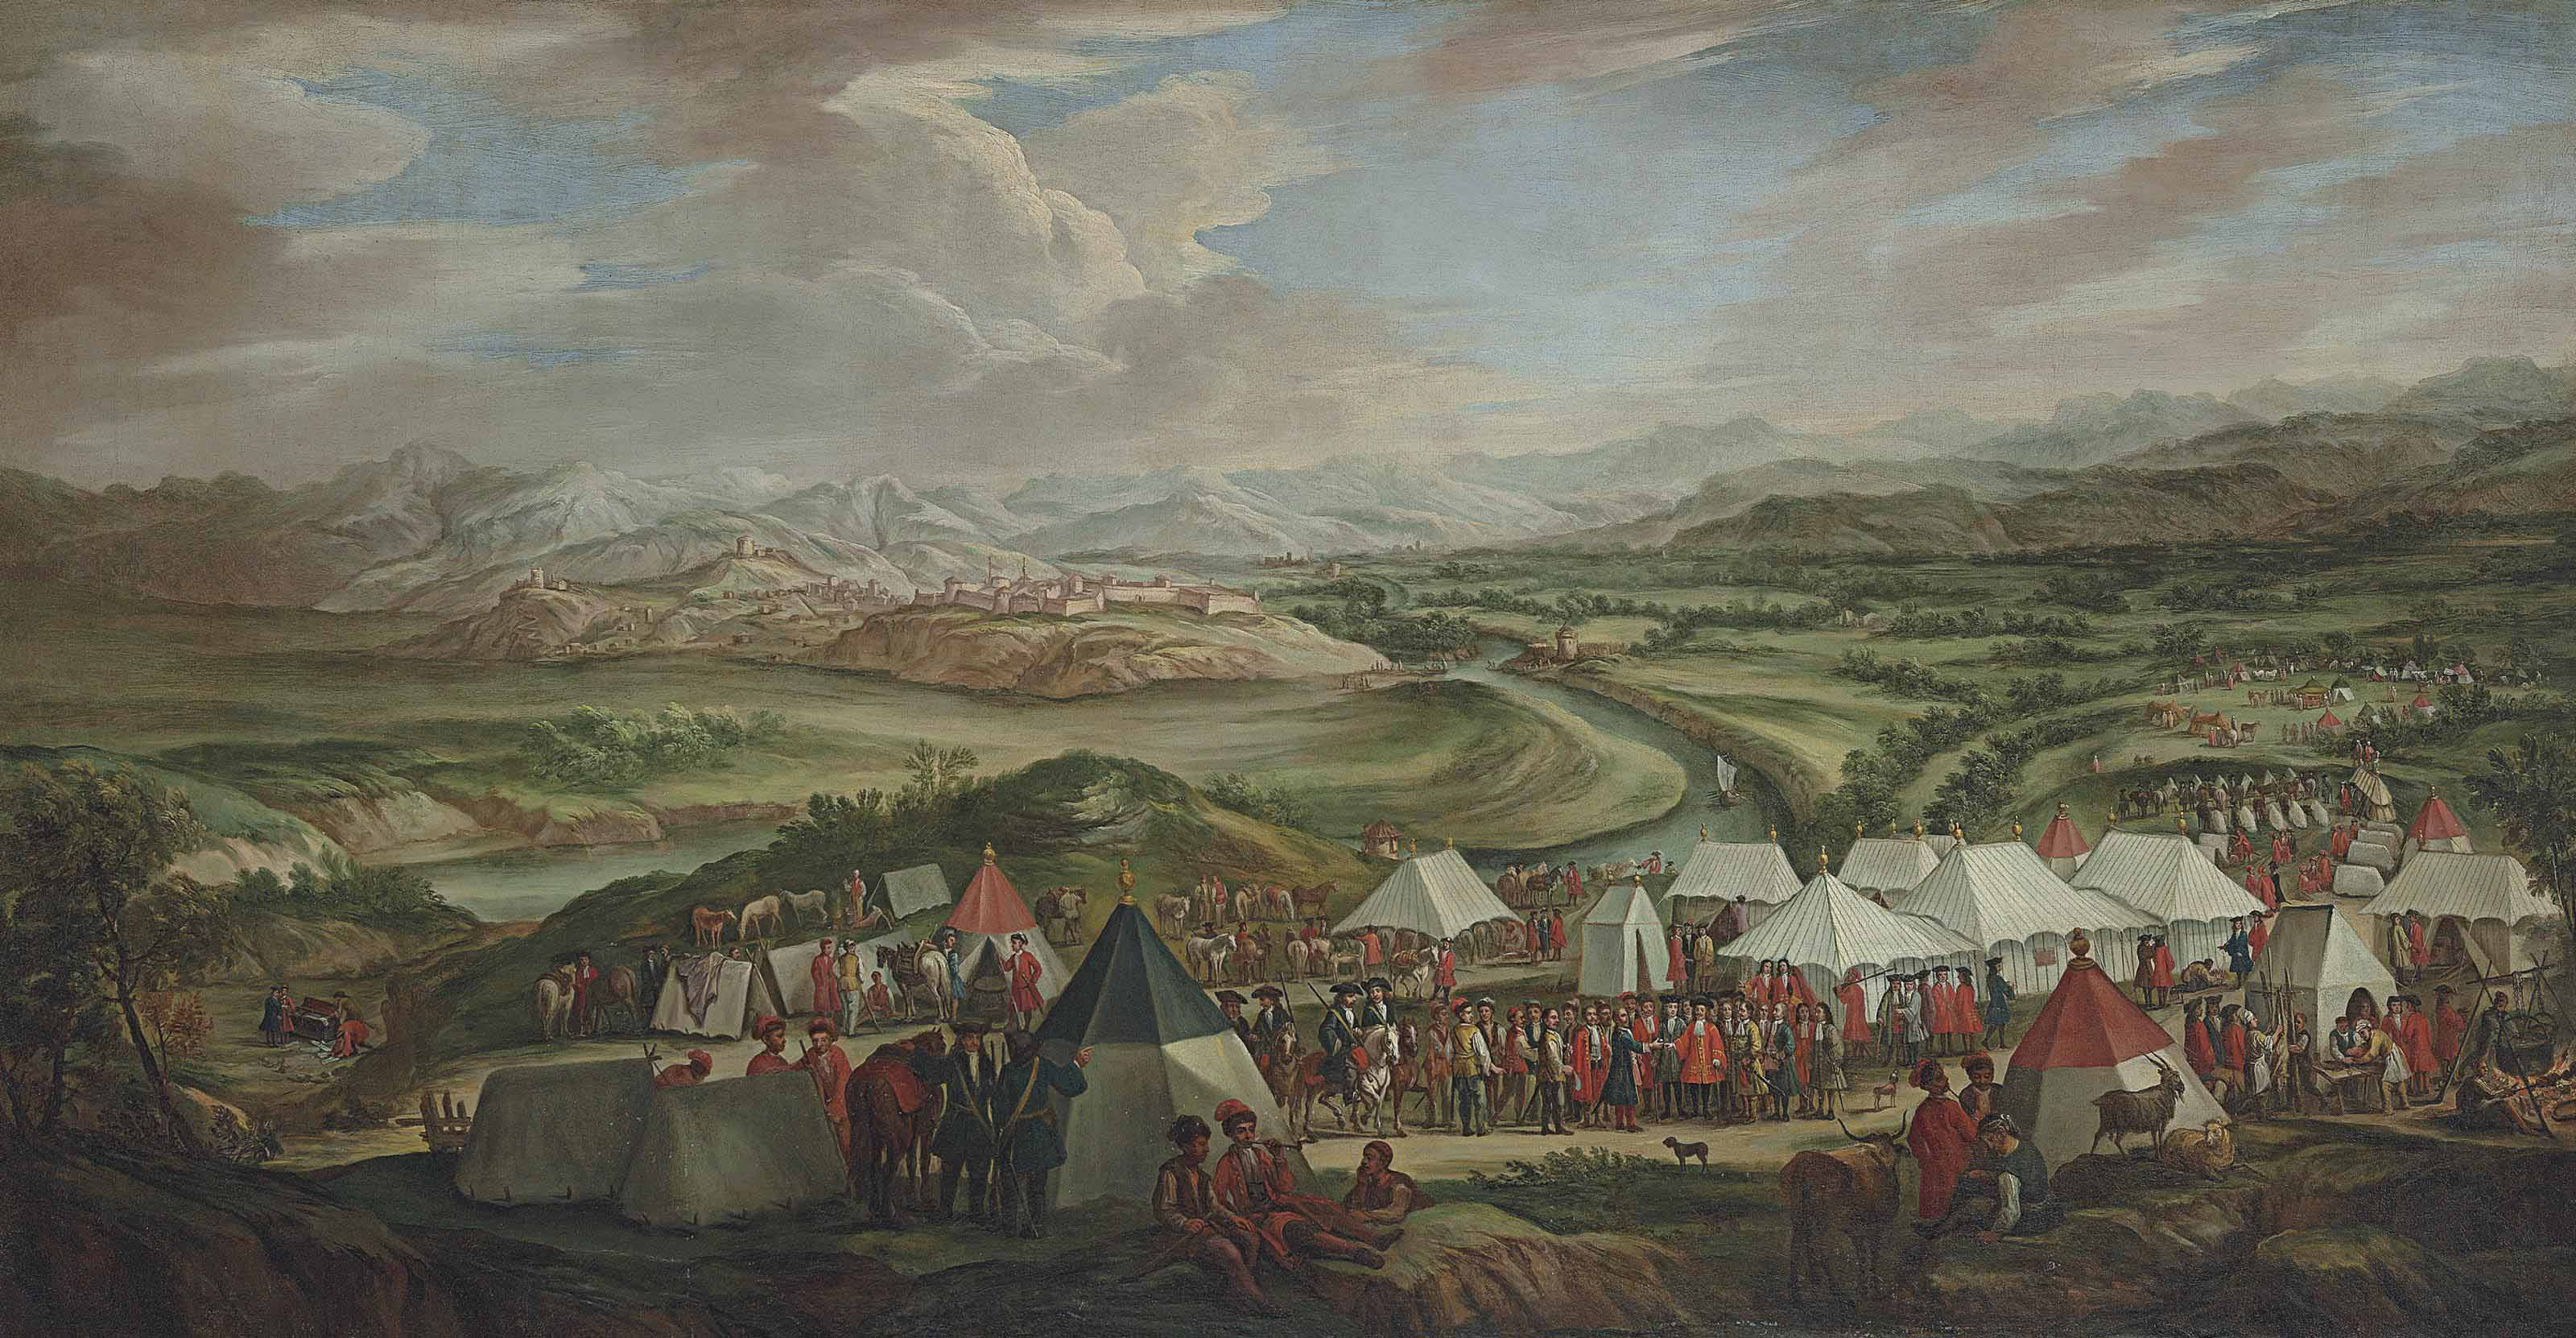 An extensive landscape with the Venetian encampment before Imotski, with a delegation of the Venetians and the Turks meeting in the foreground